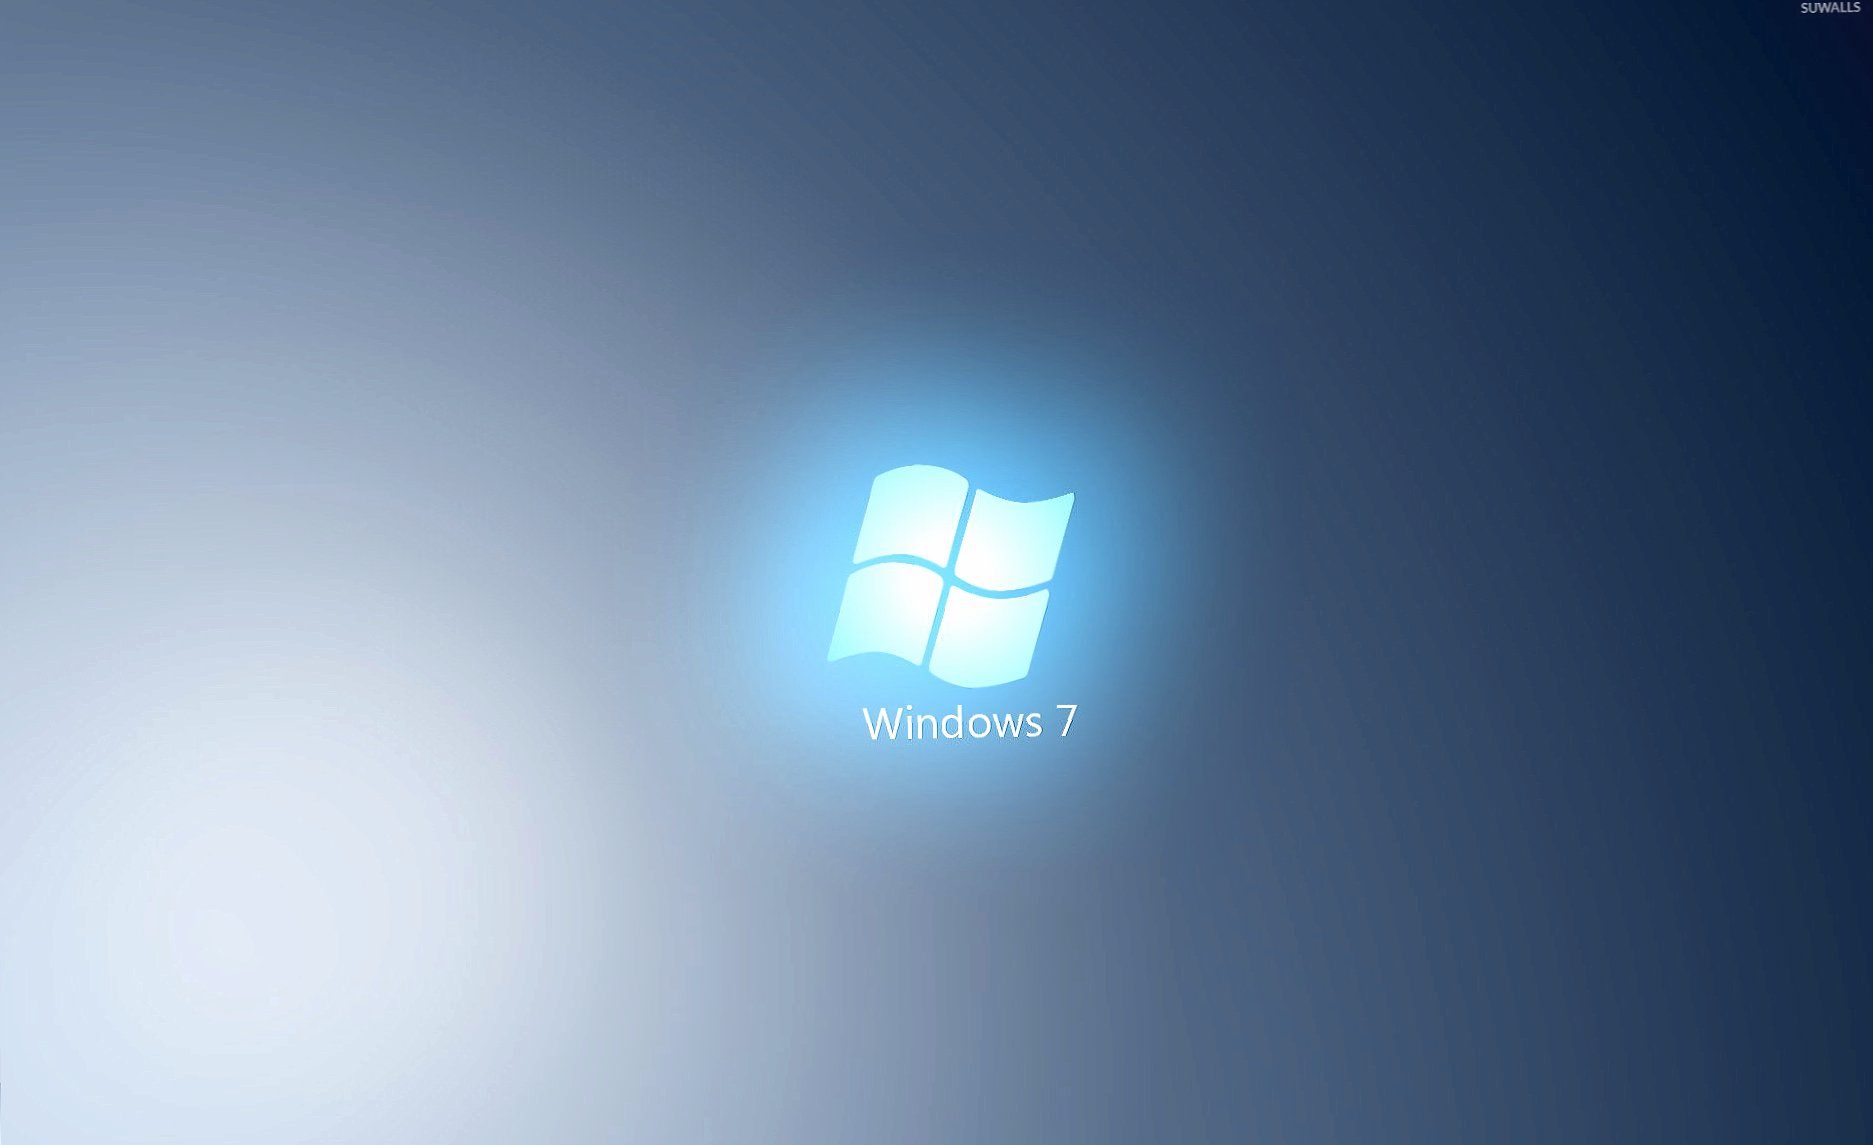 Light blue Windows 7 logo wallpapers HD quality